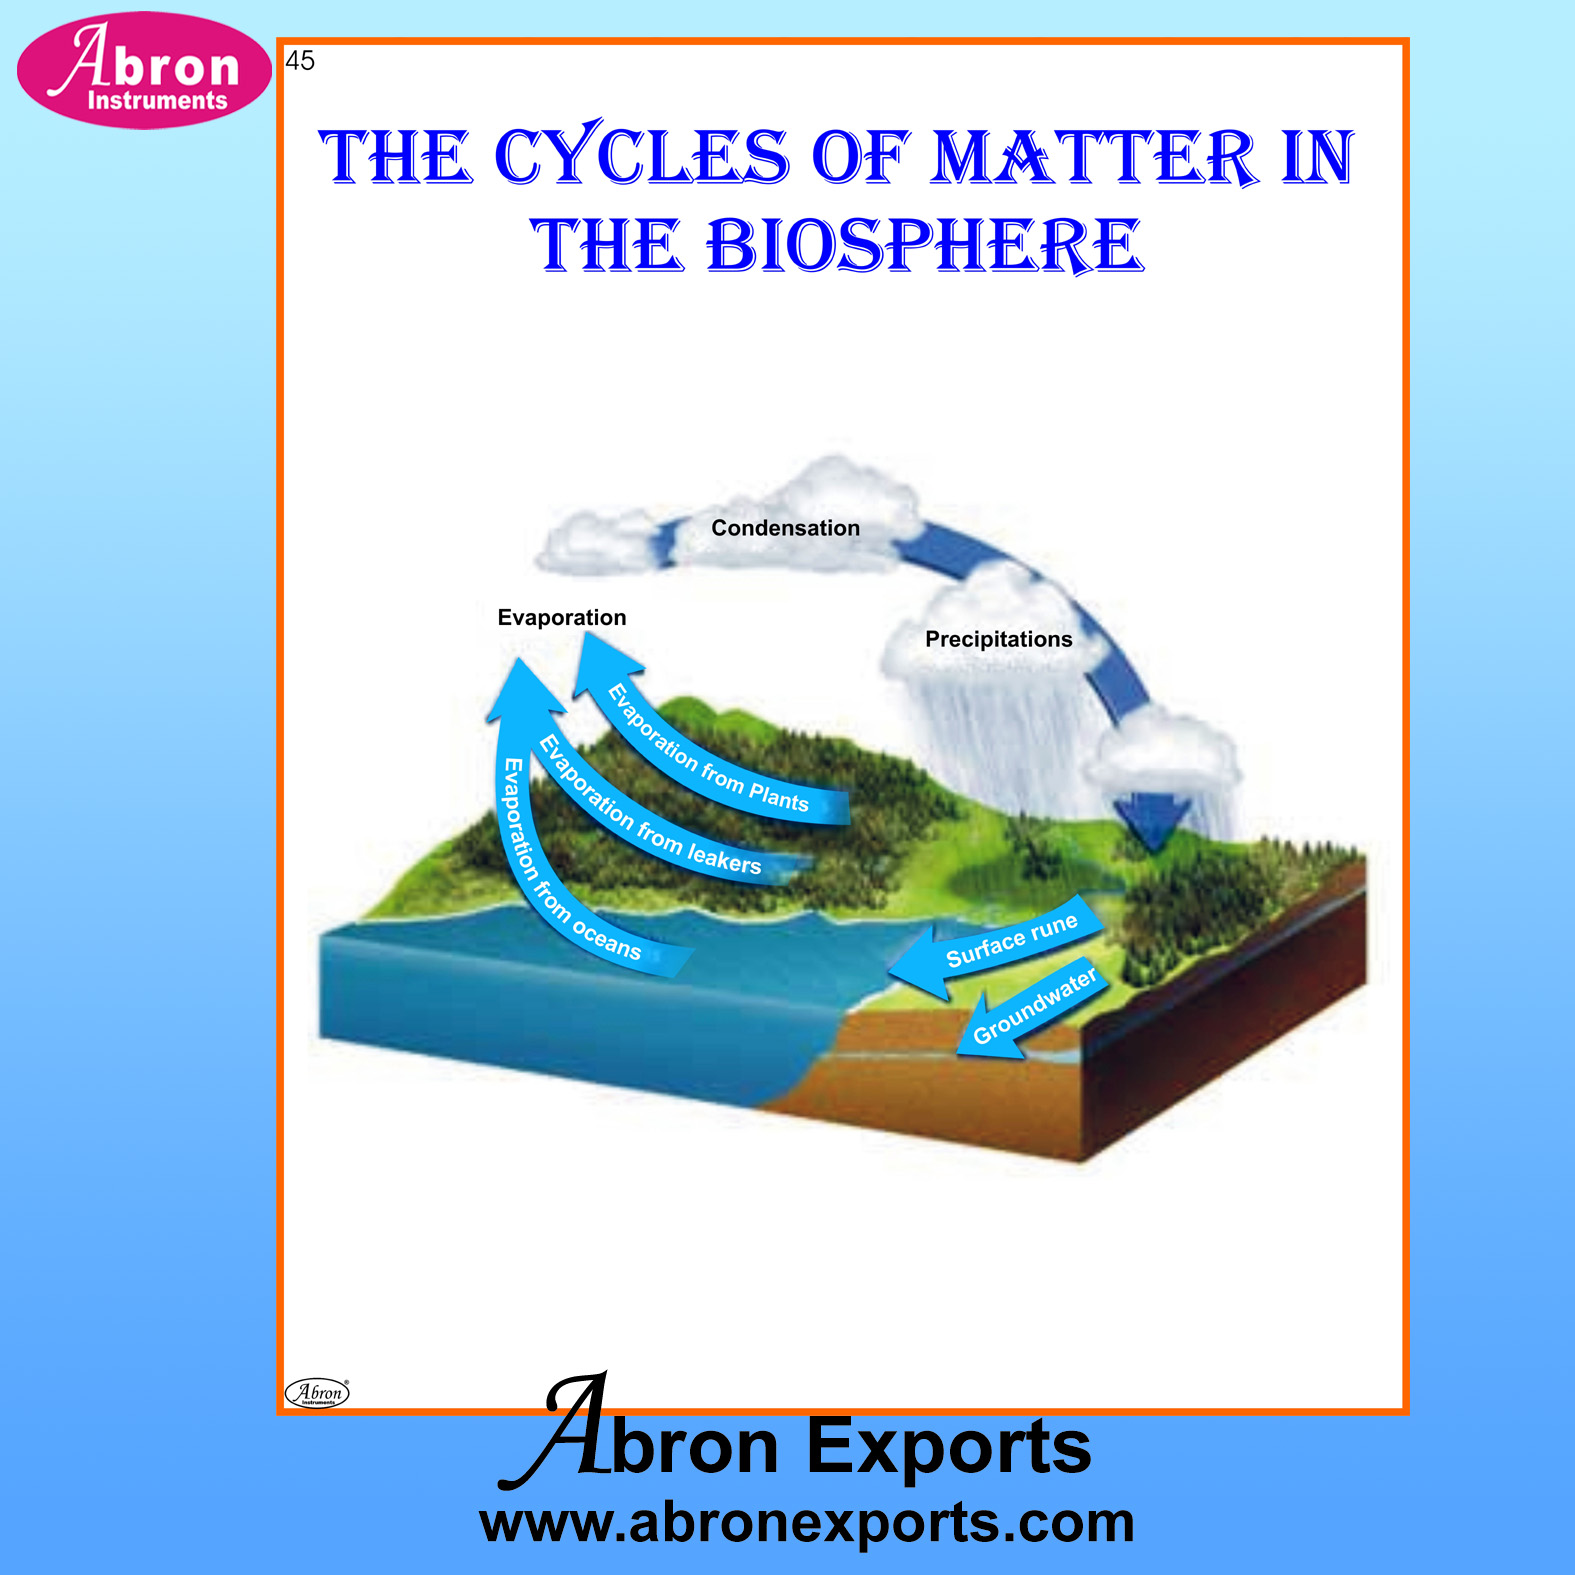 cycles of matter [pdf]free cycles of matter answers download book cycles of matter answerspdf 200 top civil engineering interview questions and answers pdf sat, 15 sep 2018 03:41:00 gmt.